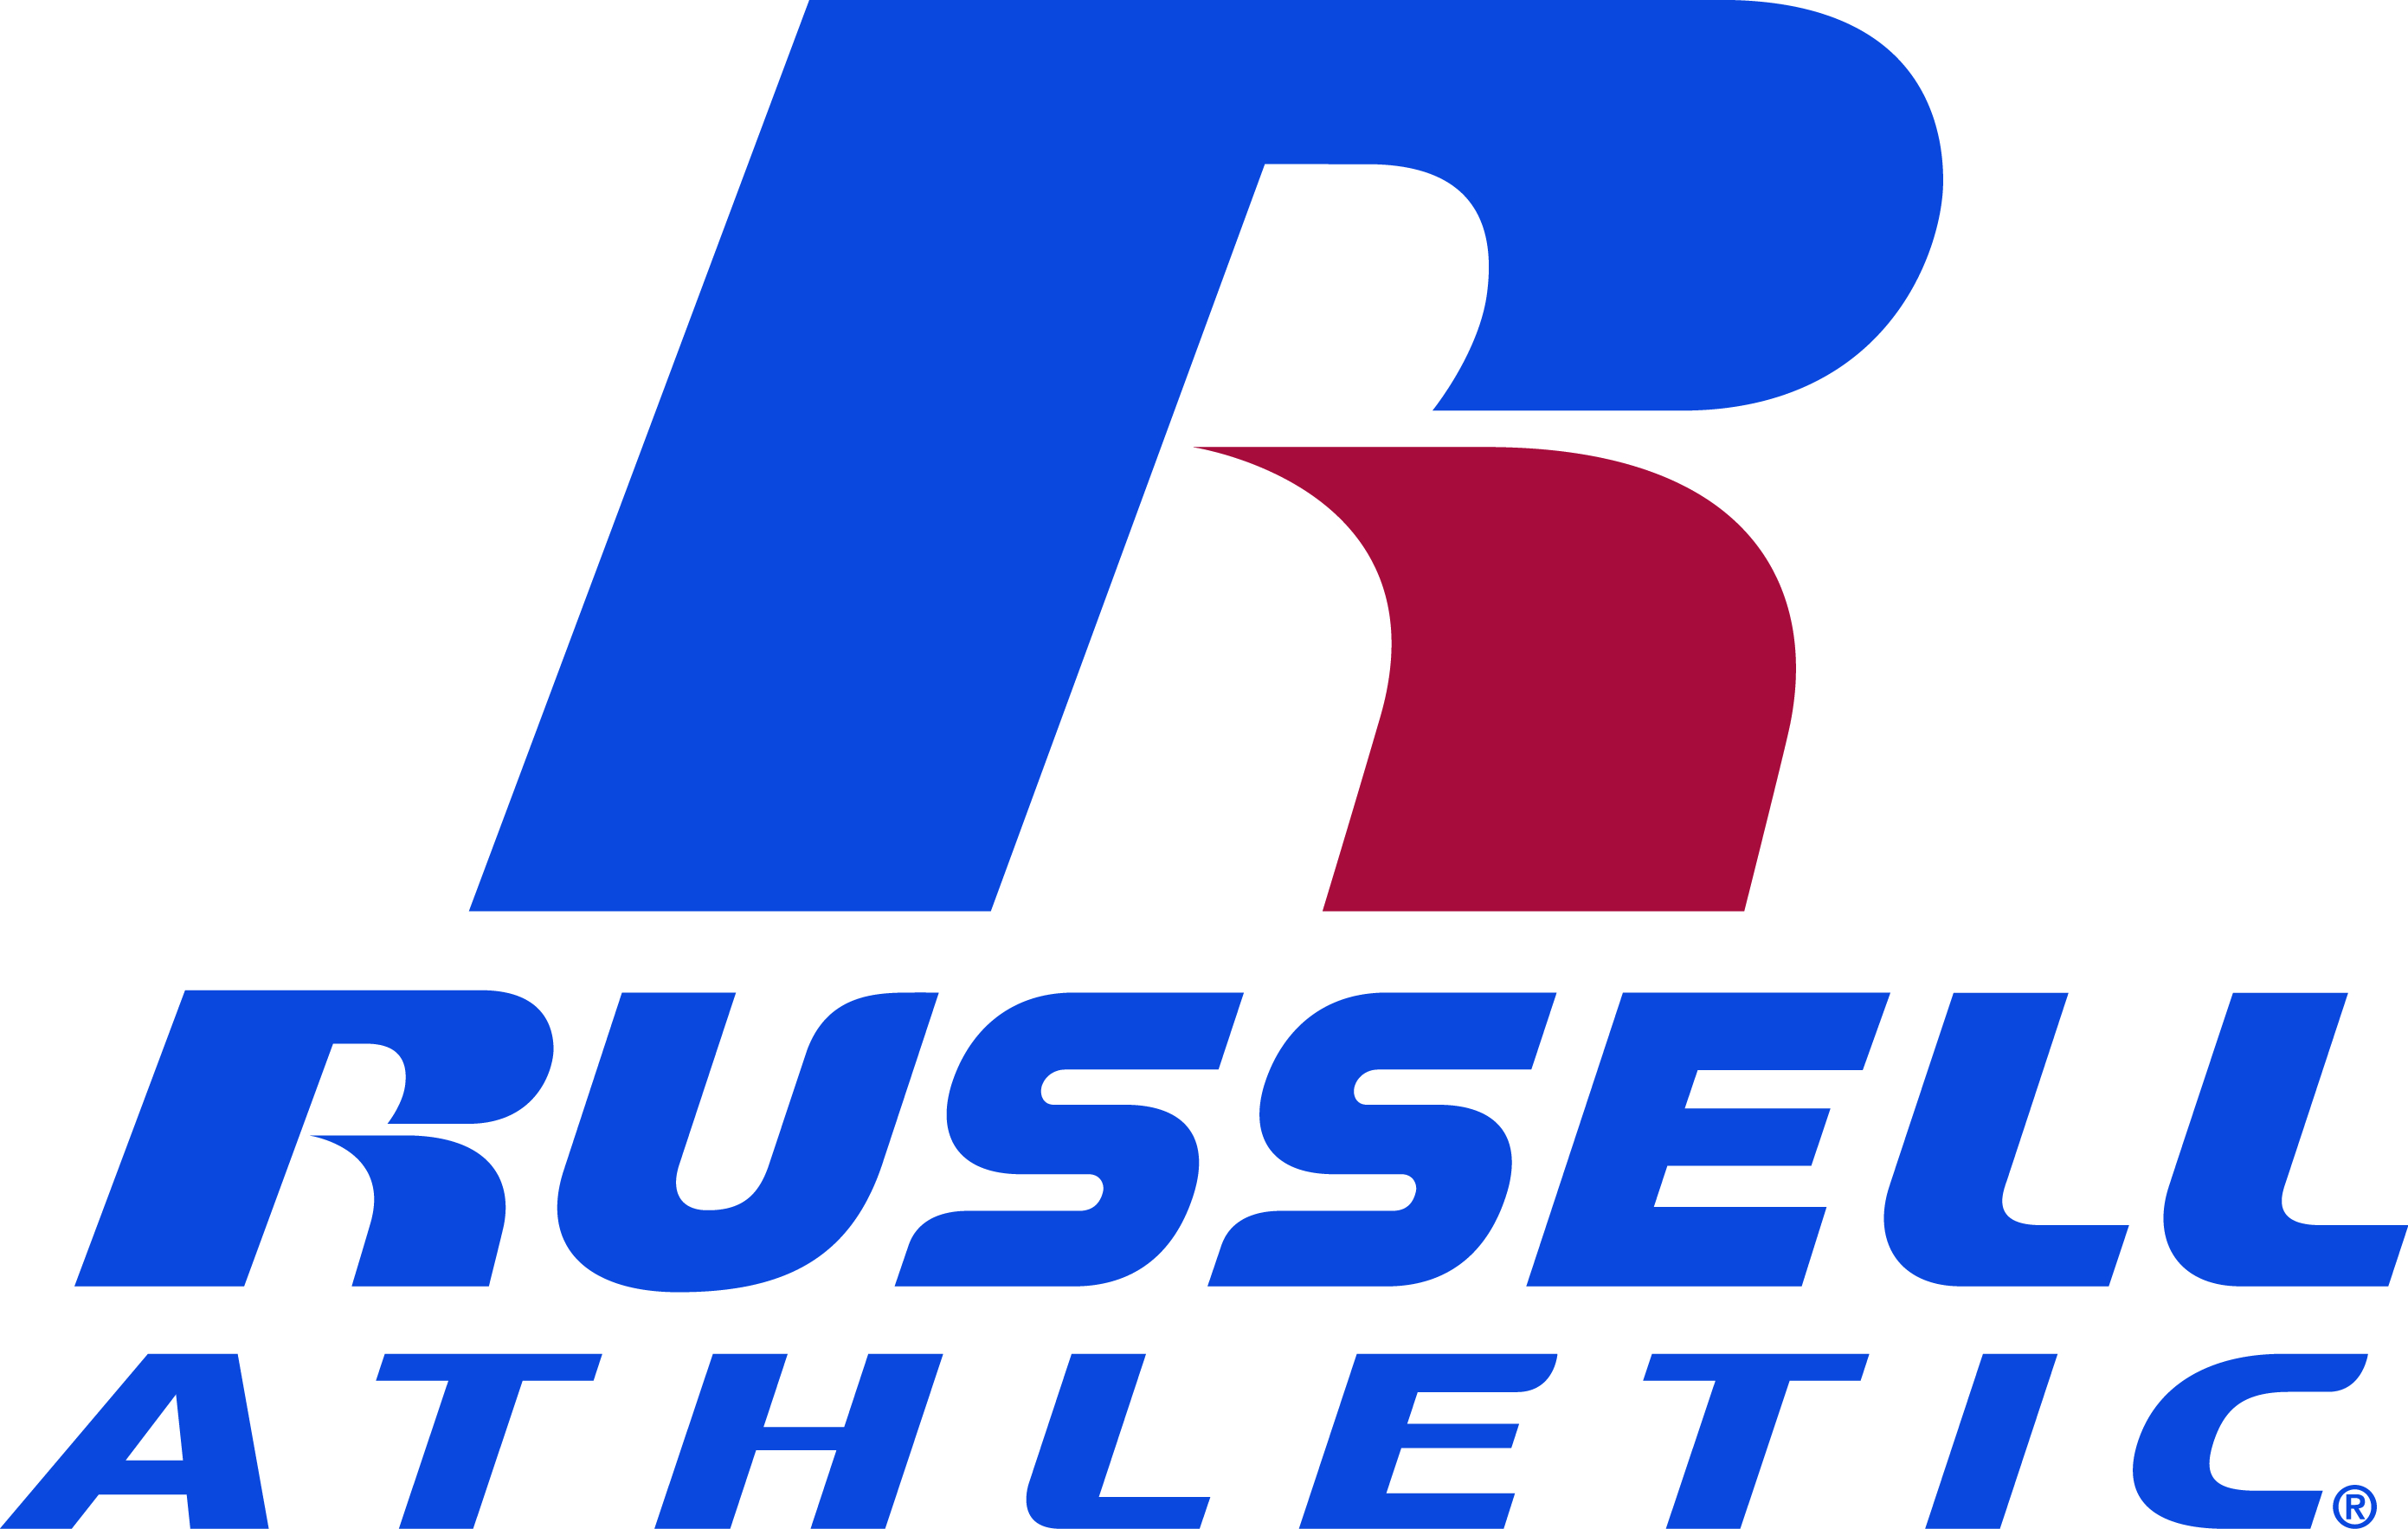 Russell Athletic's Logo